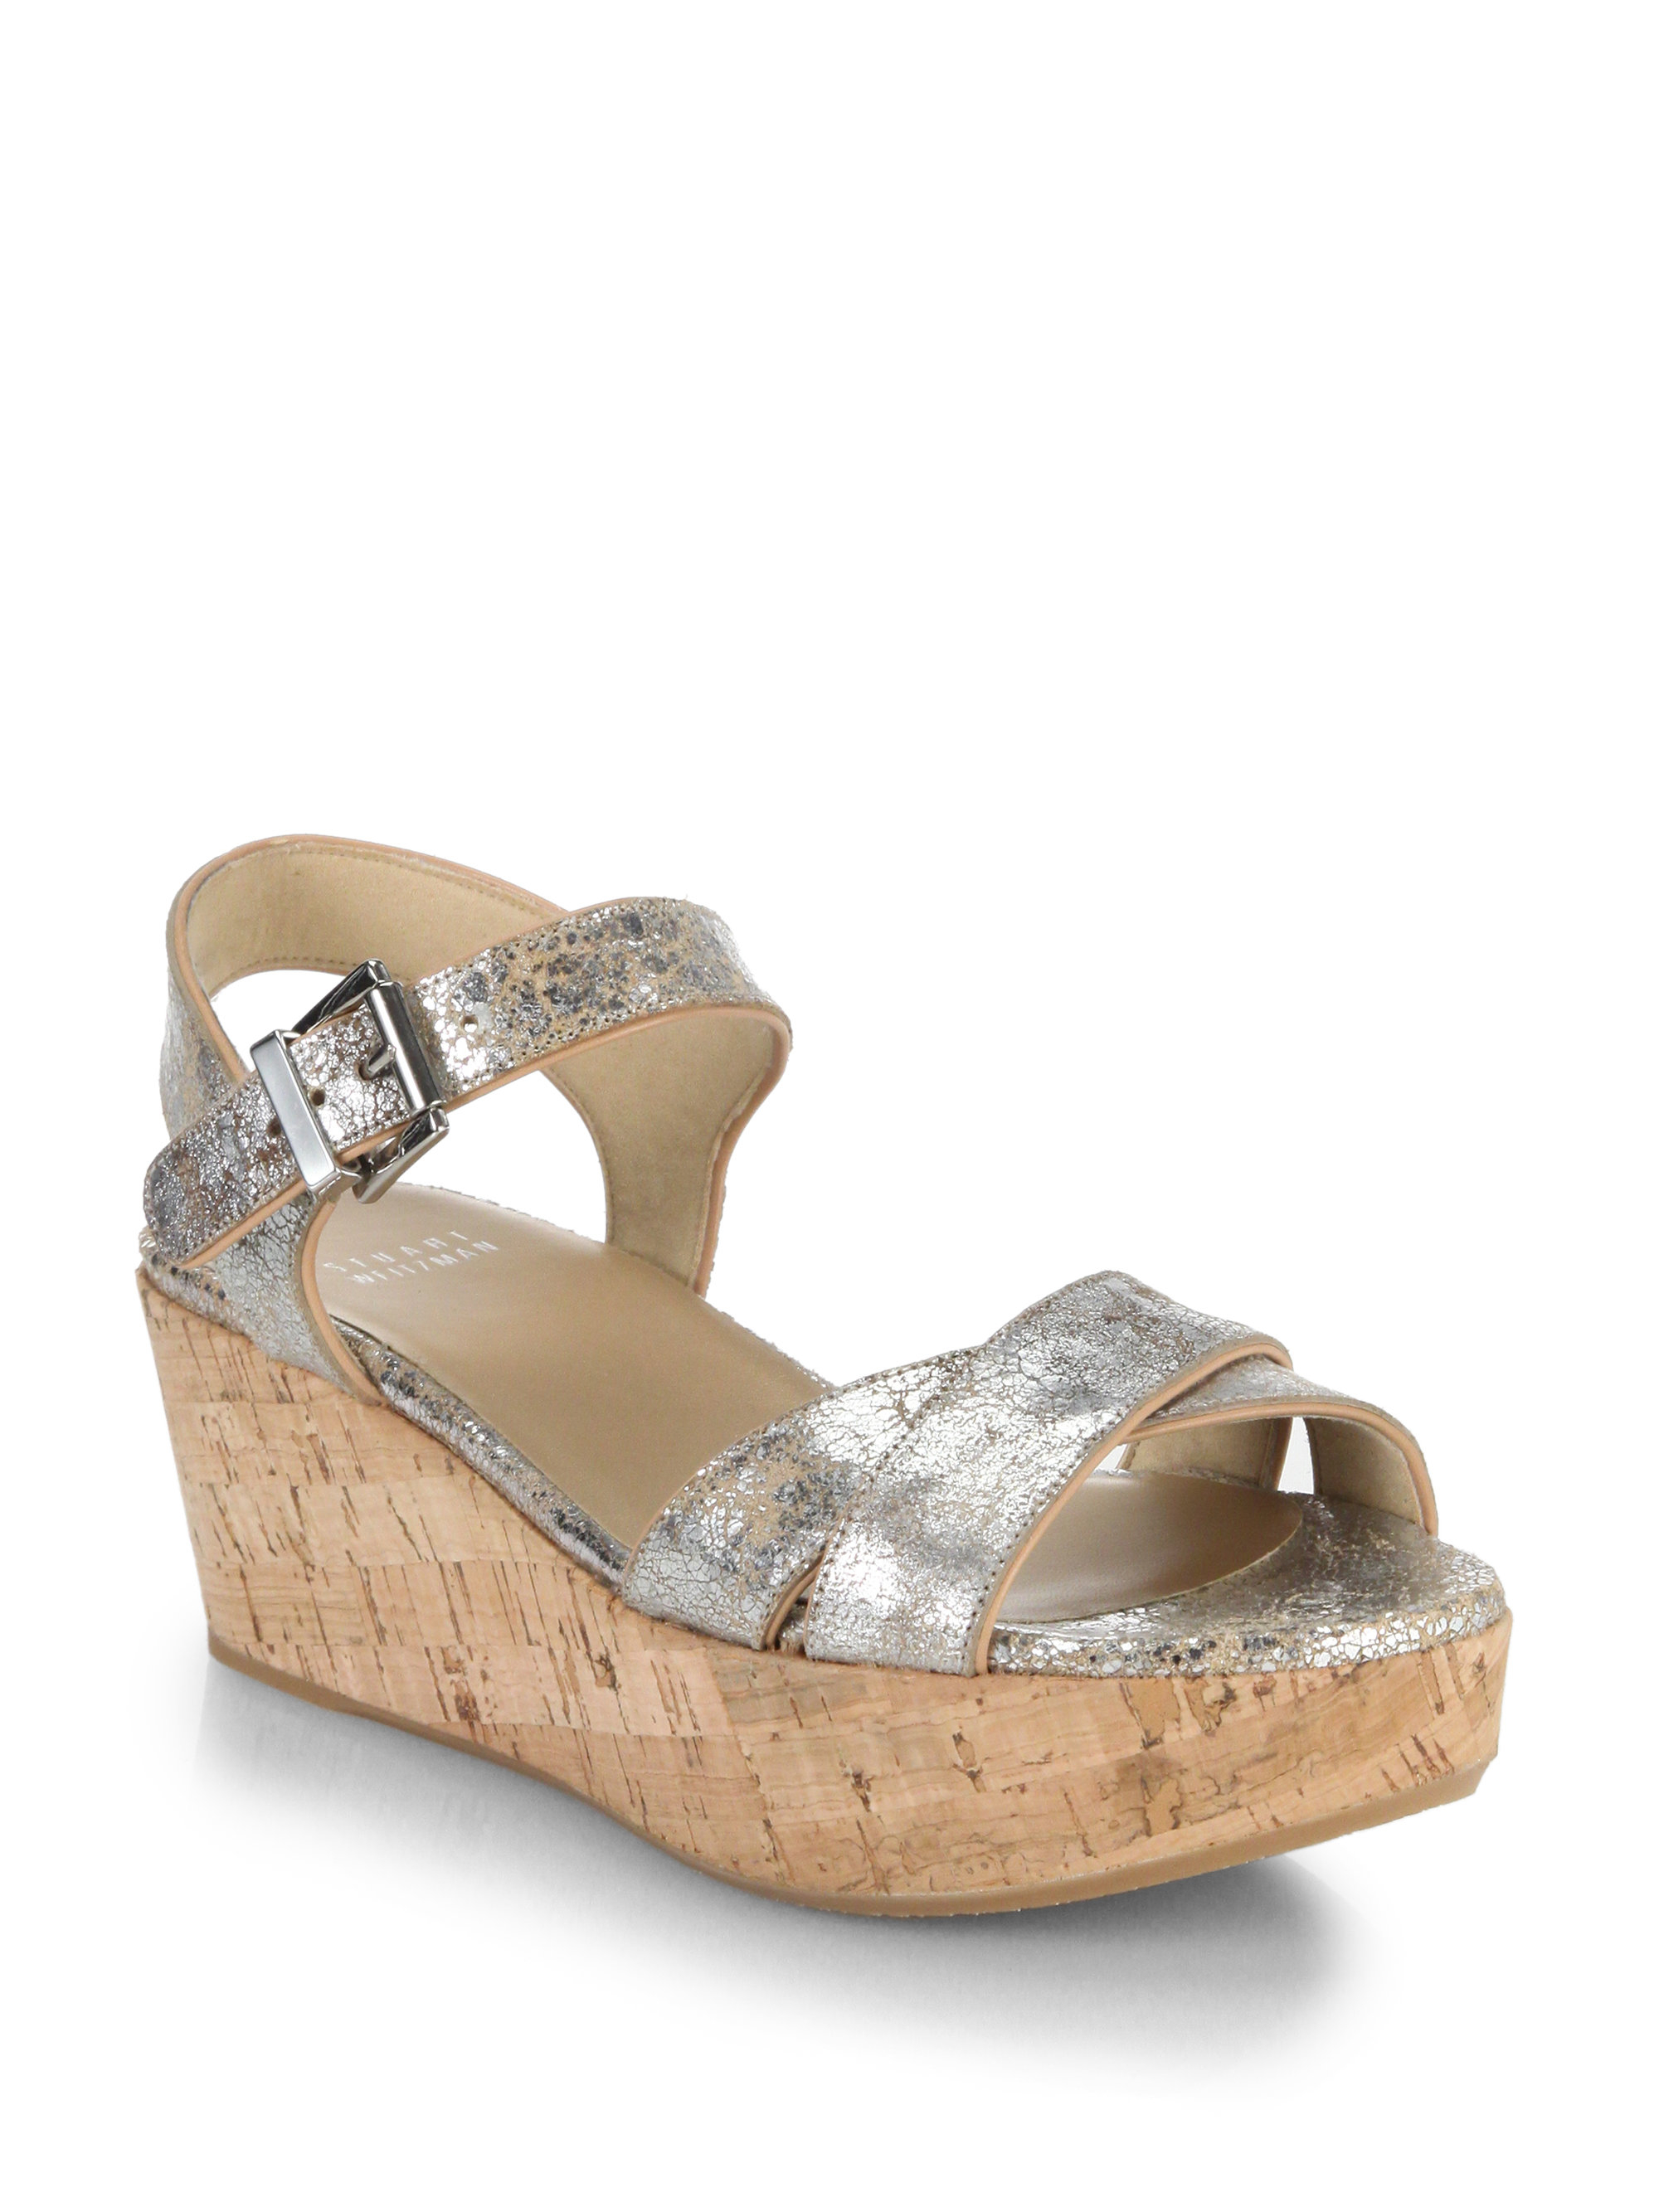 Stuart Weitzman Embossed Buckle Wedges